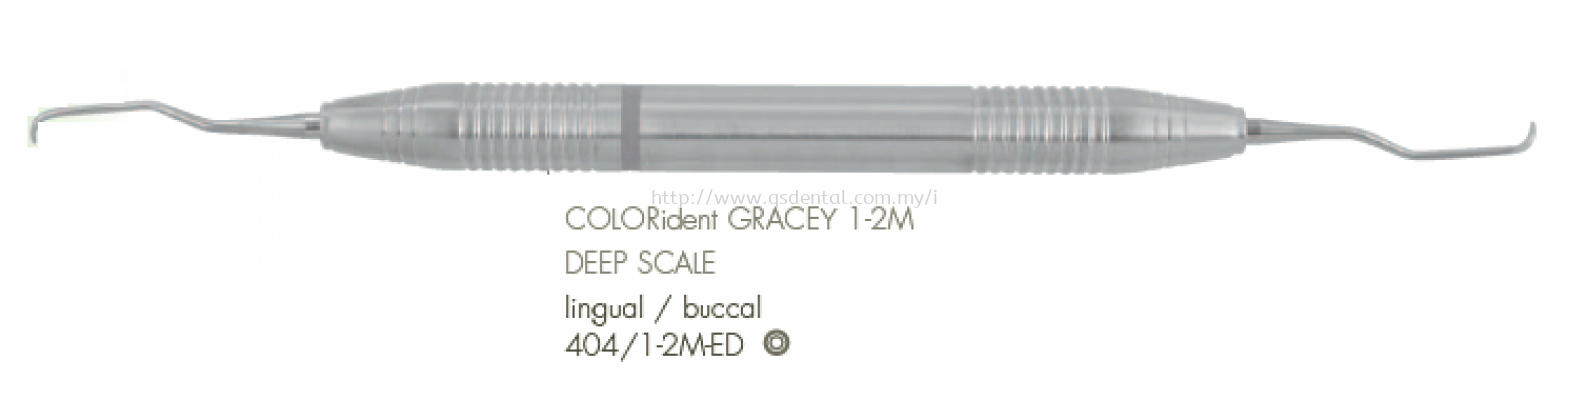 404/1-2M-ED 10mm Handle With COLORident Deep Scale Lingual / Buccal No.1-2M Gracey Curettes